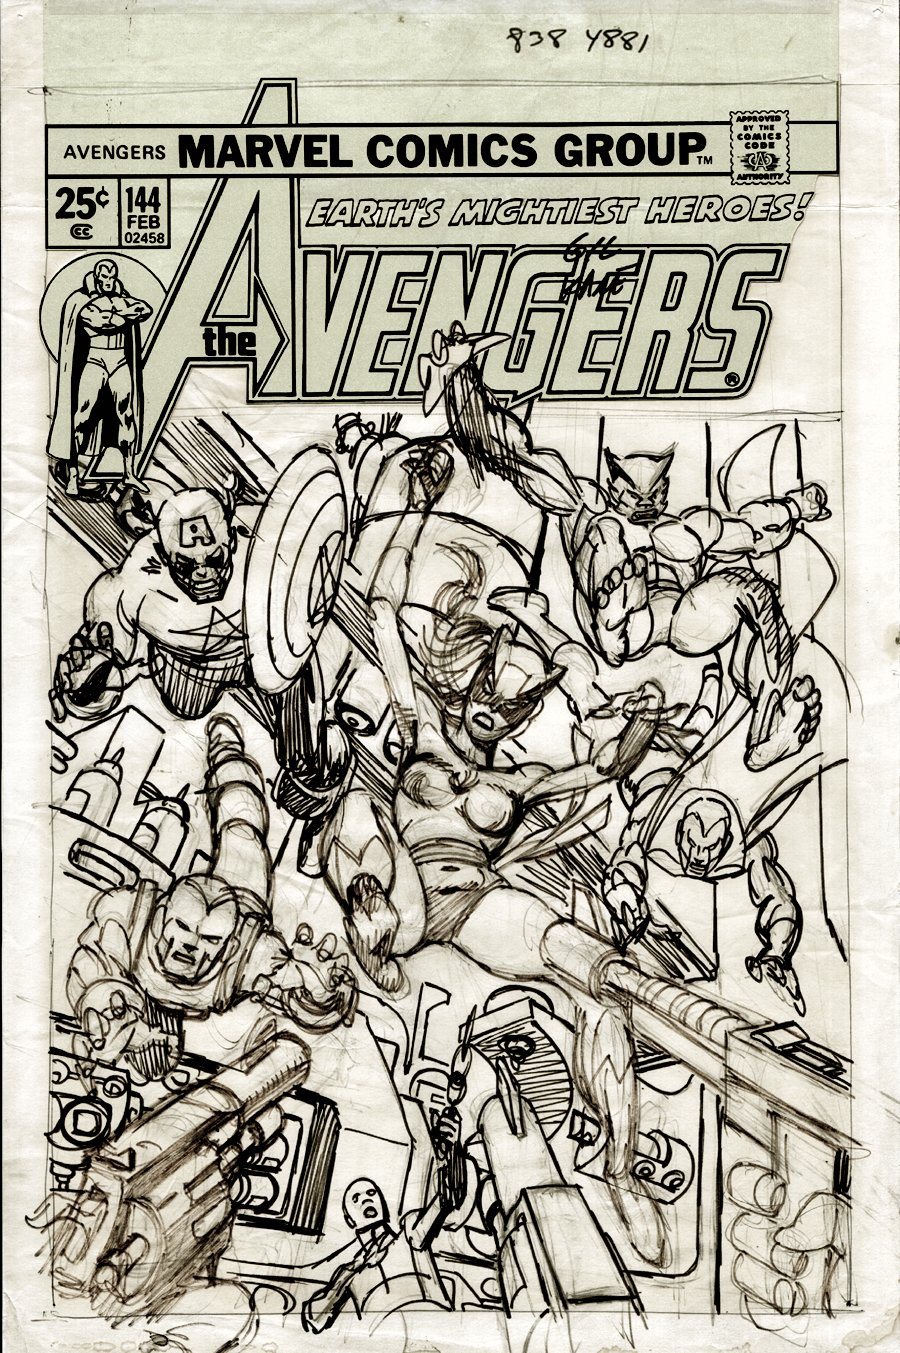 Avengers #144 FULL SIZE Cover Prelim (FIRST EVER HELLCAT DRAWING!) 1975